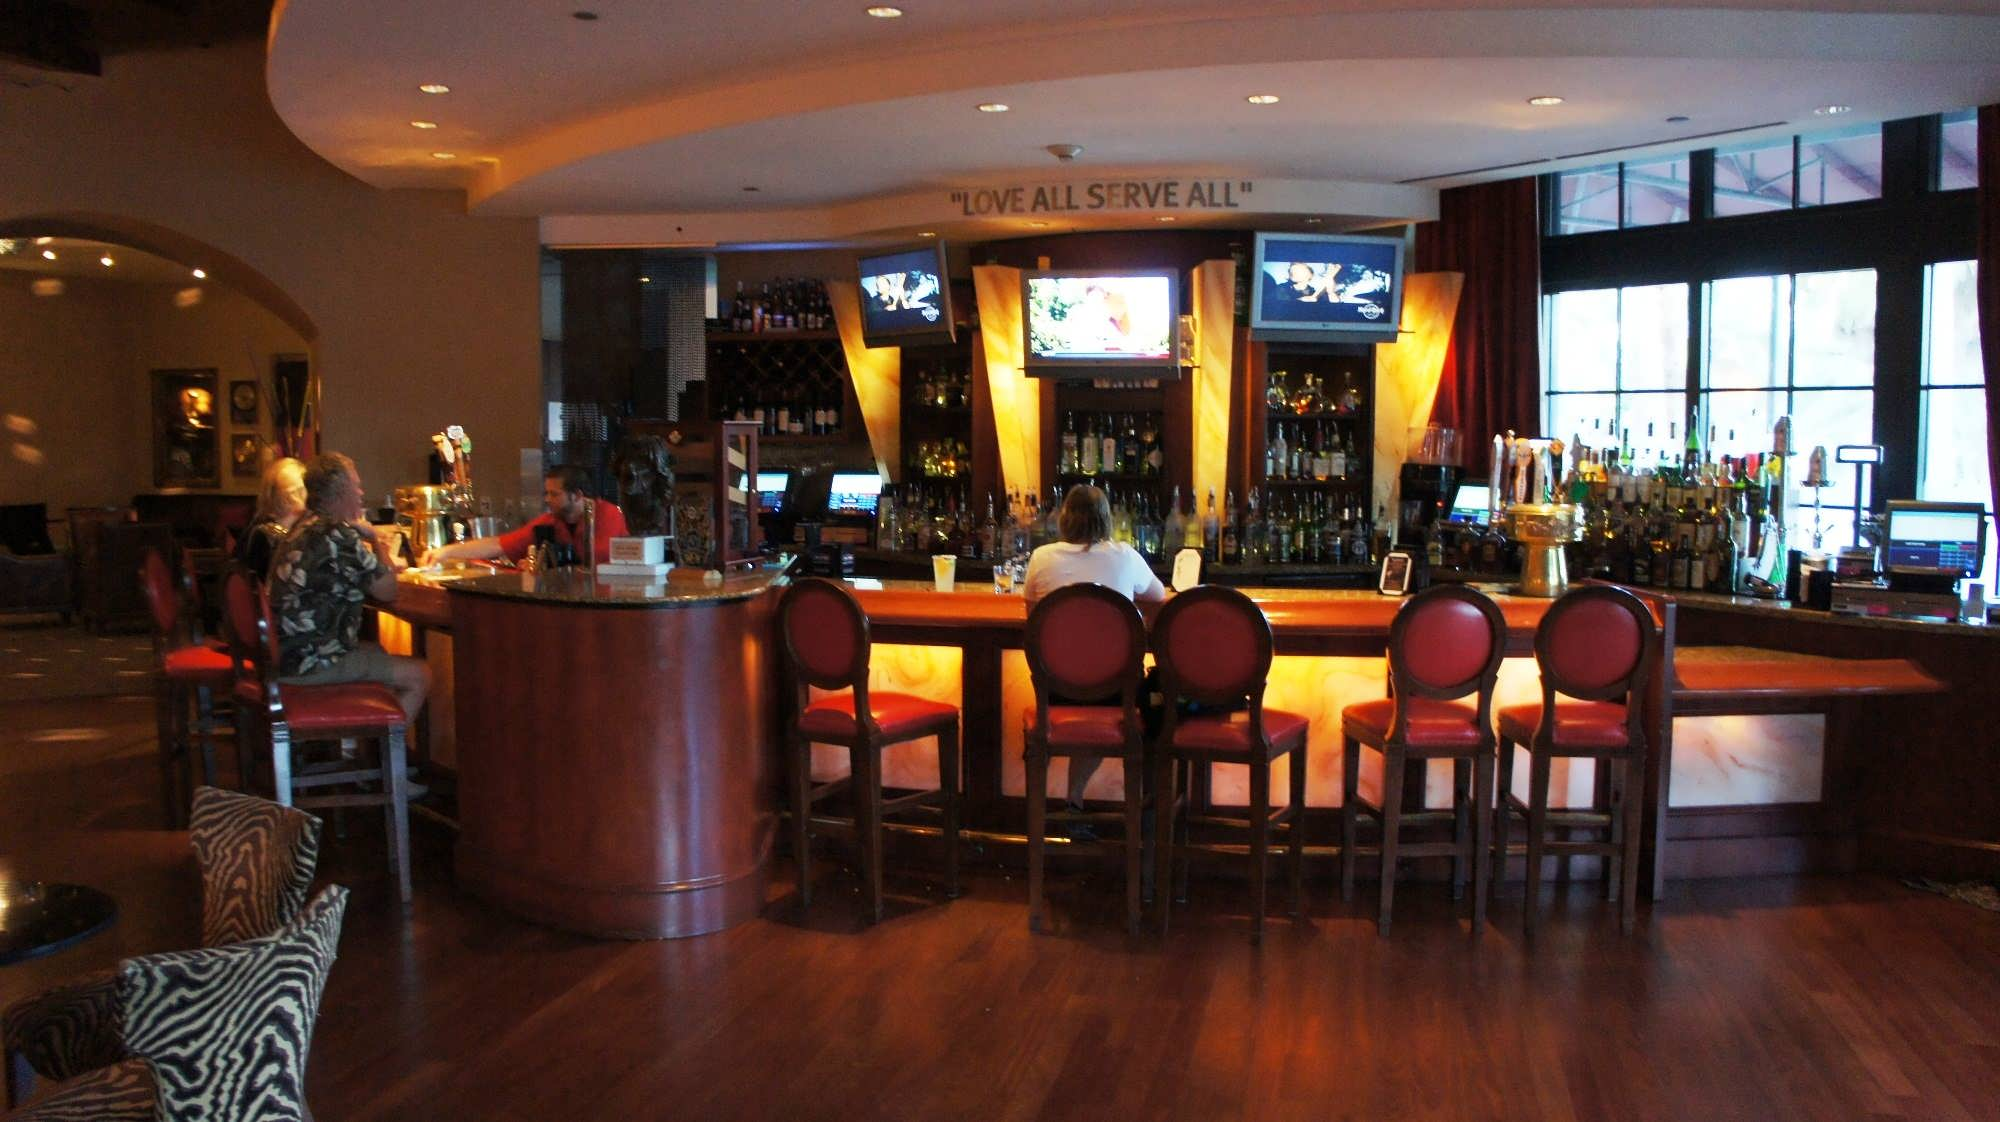 Hard Rock Hotel's Velvet Bar